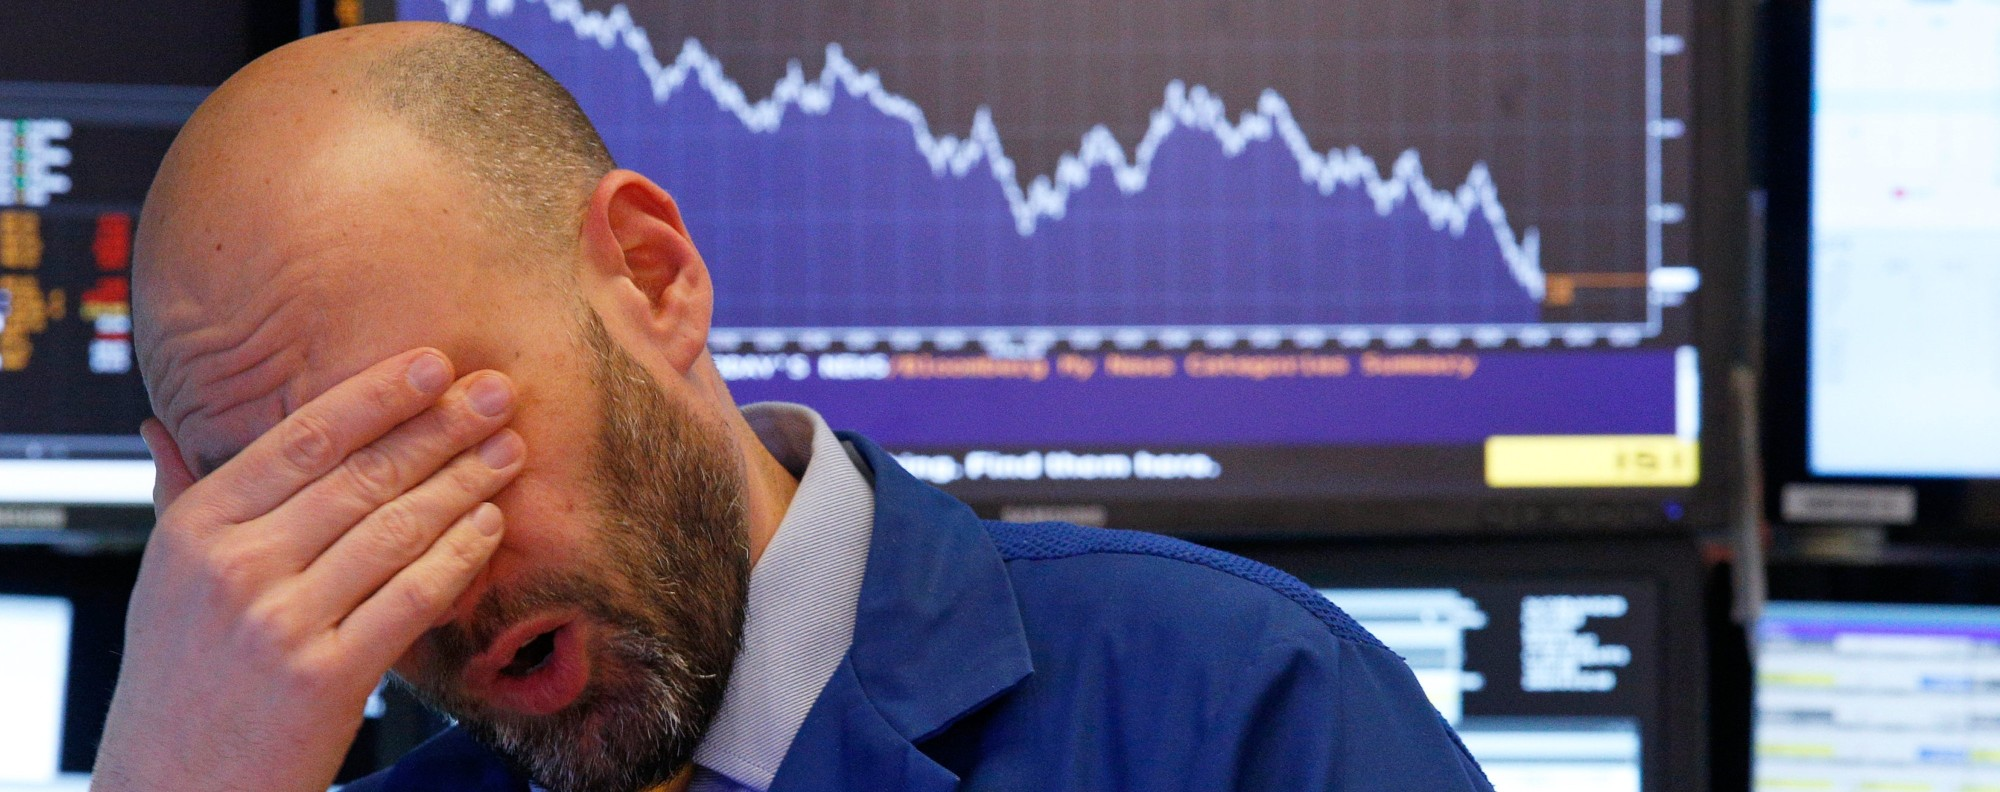 A trader on the floor of the New York Stock Exchange. Photo: Reuters